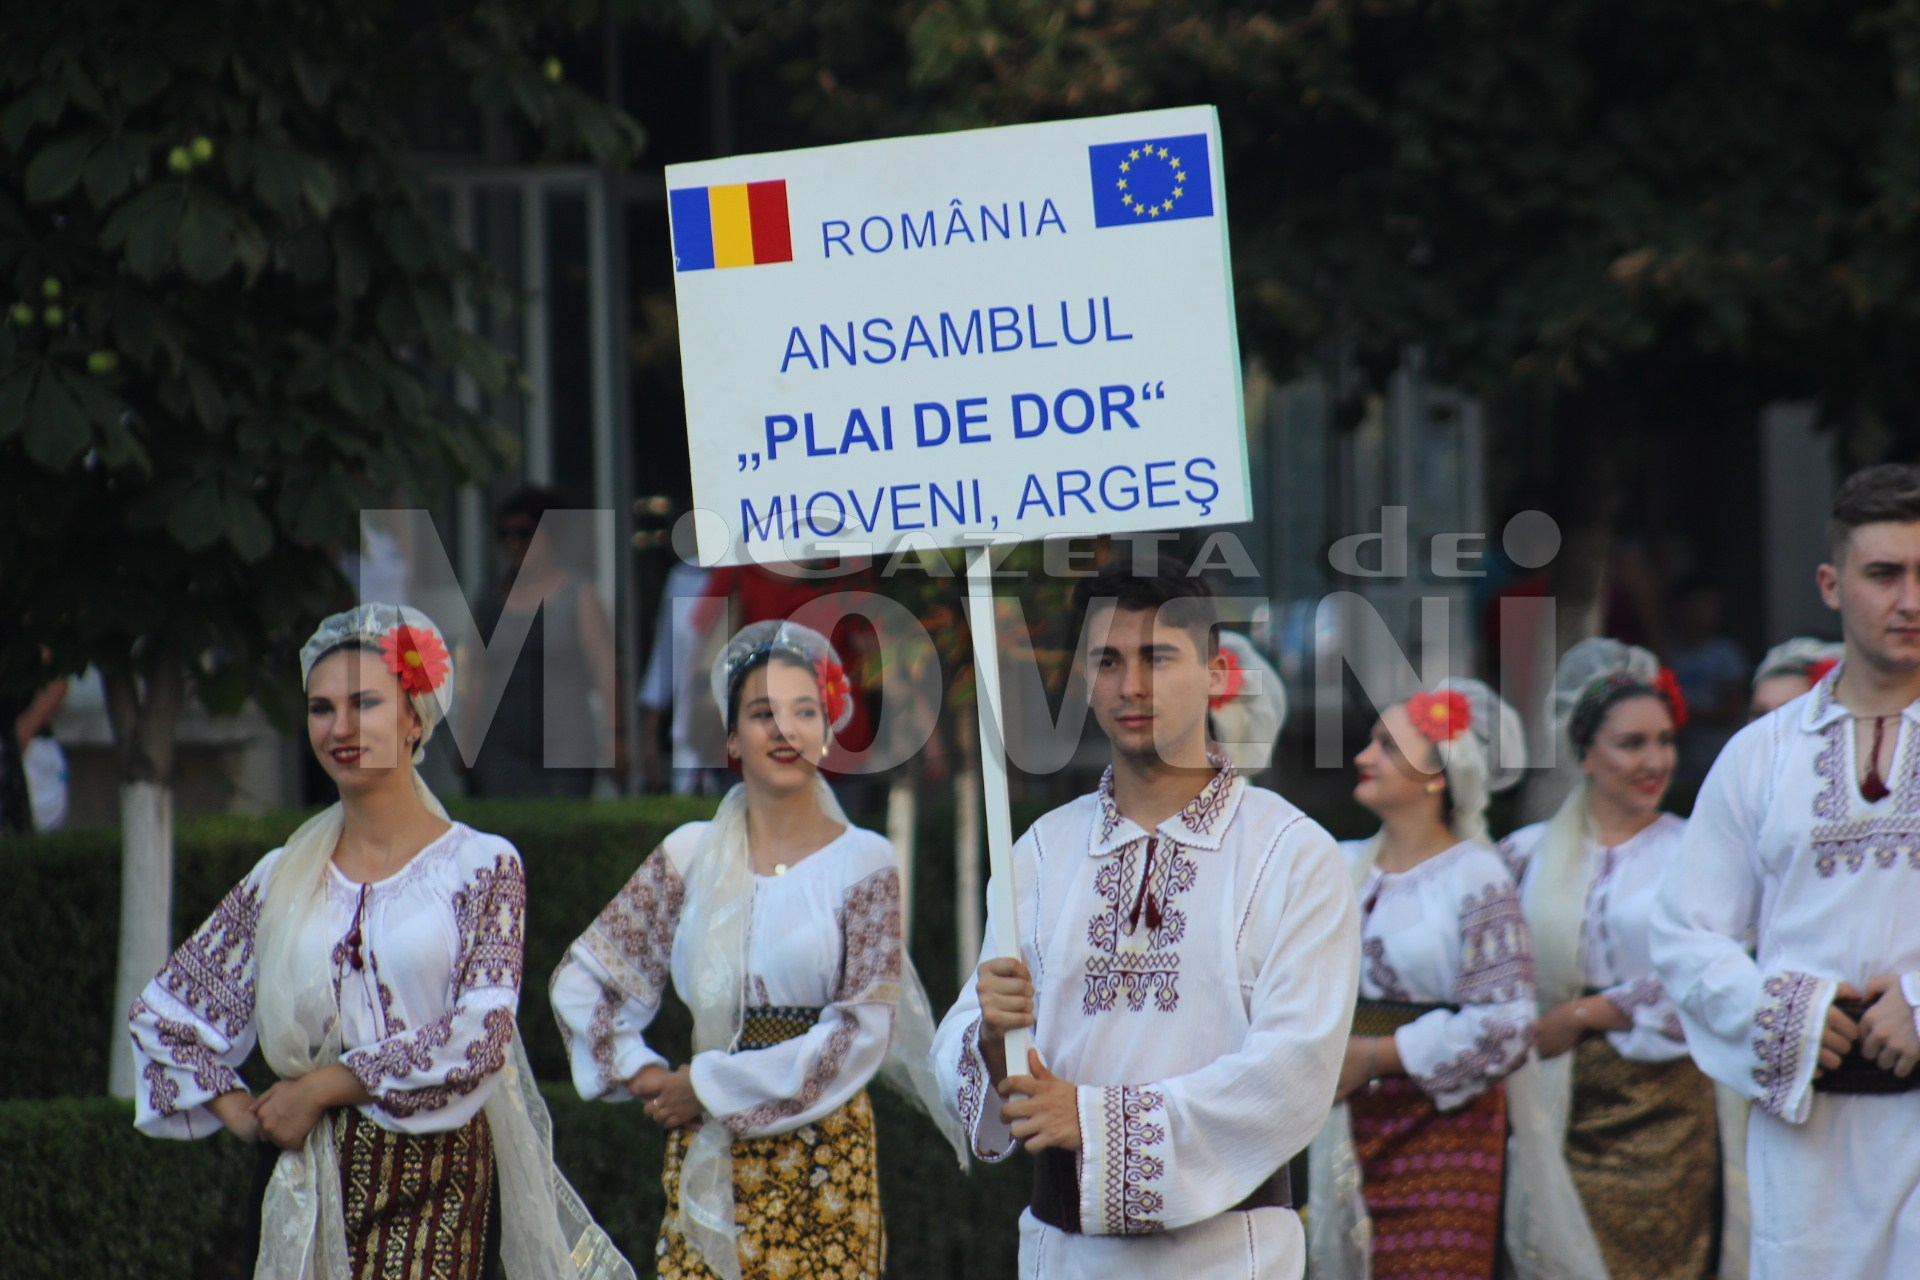 festivalul-carpati-mioveni-august-2017 (3)